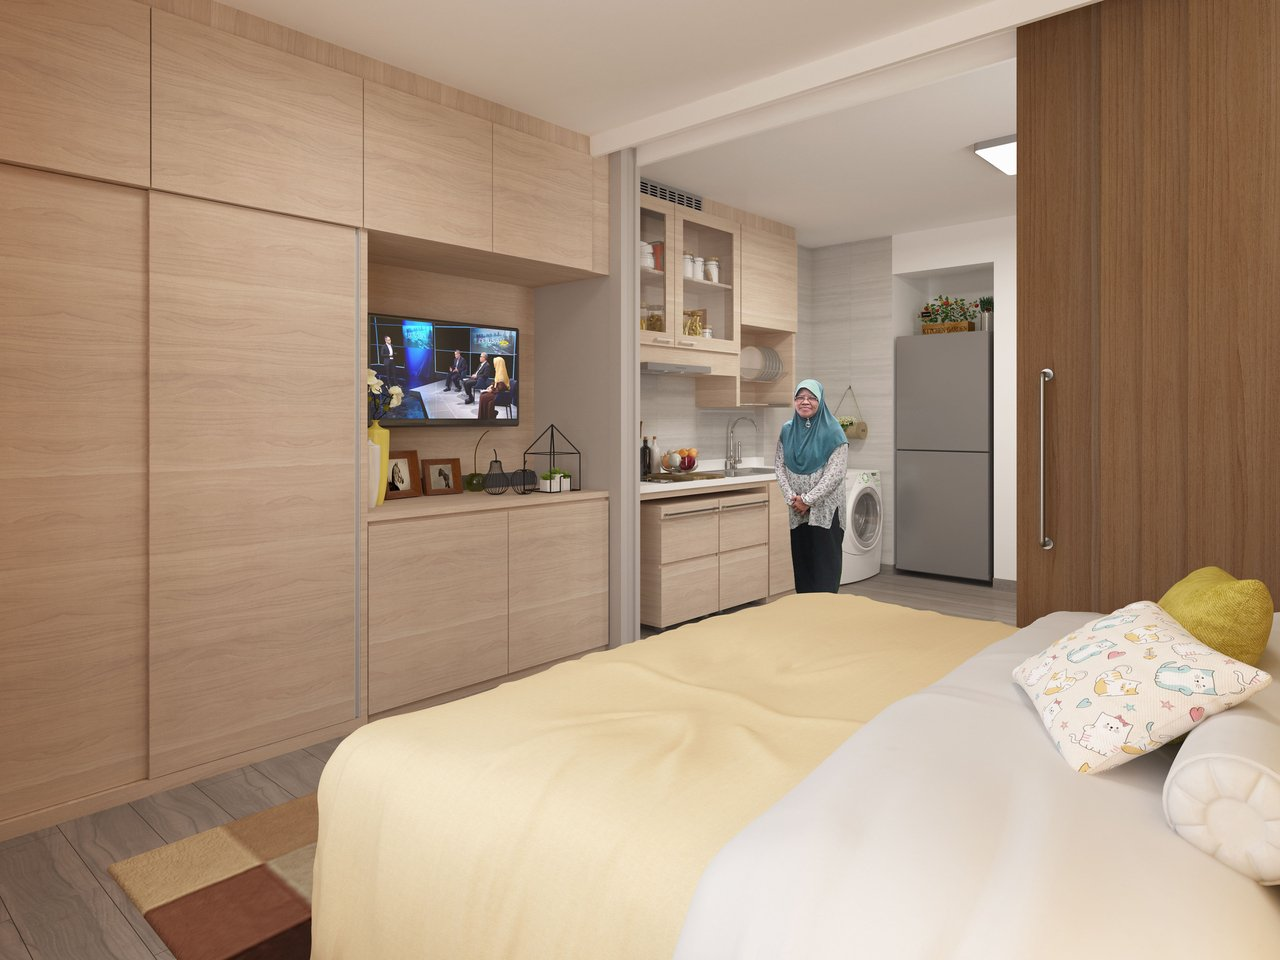 hdb community care apartment interior